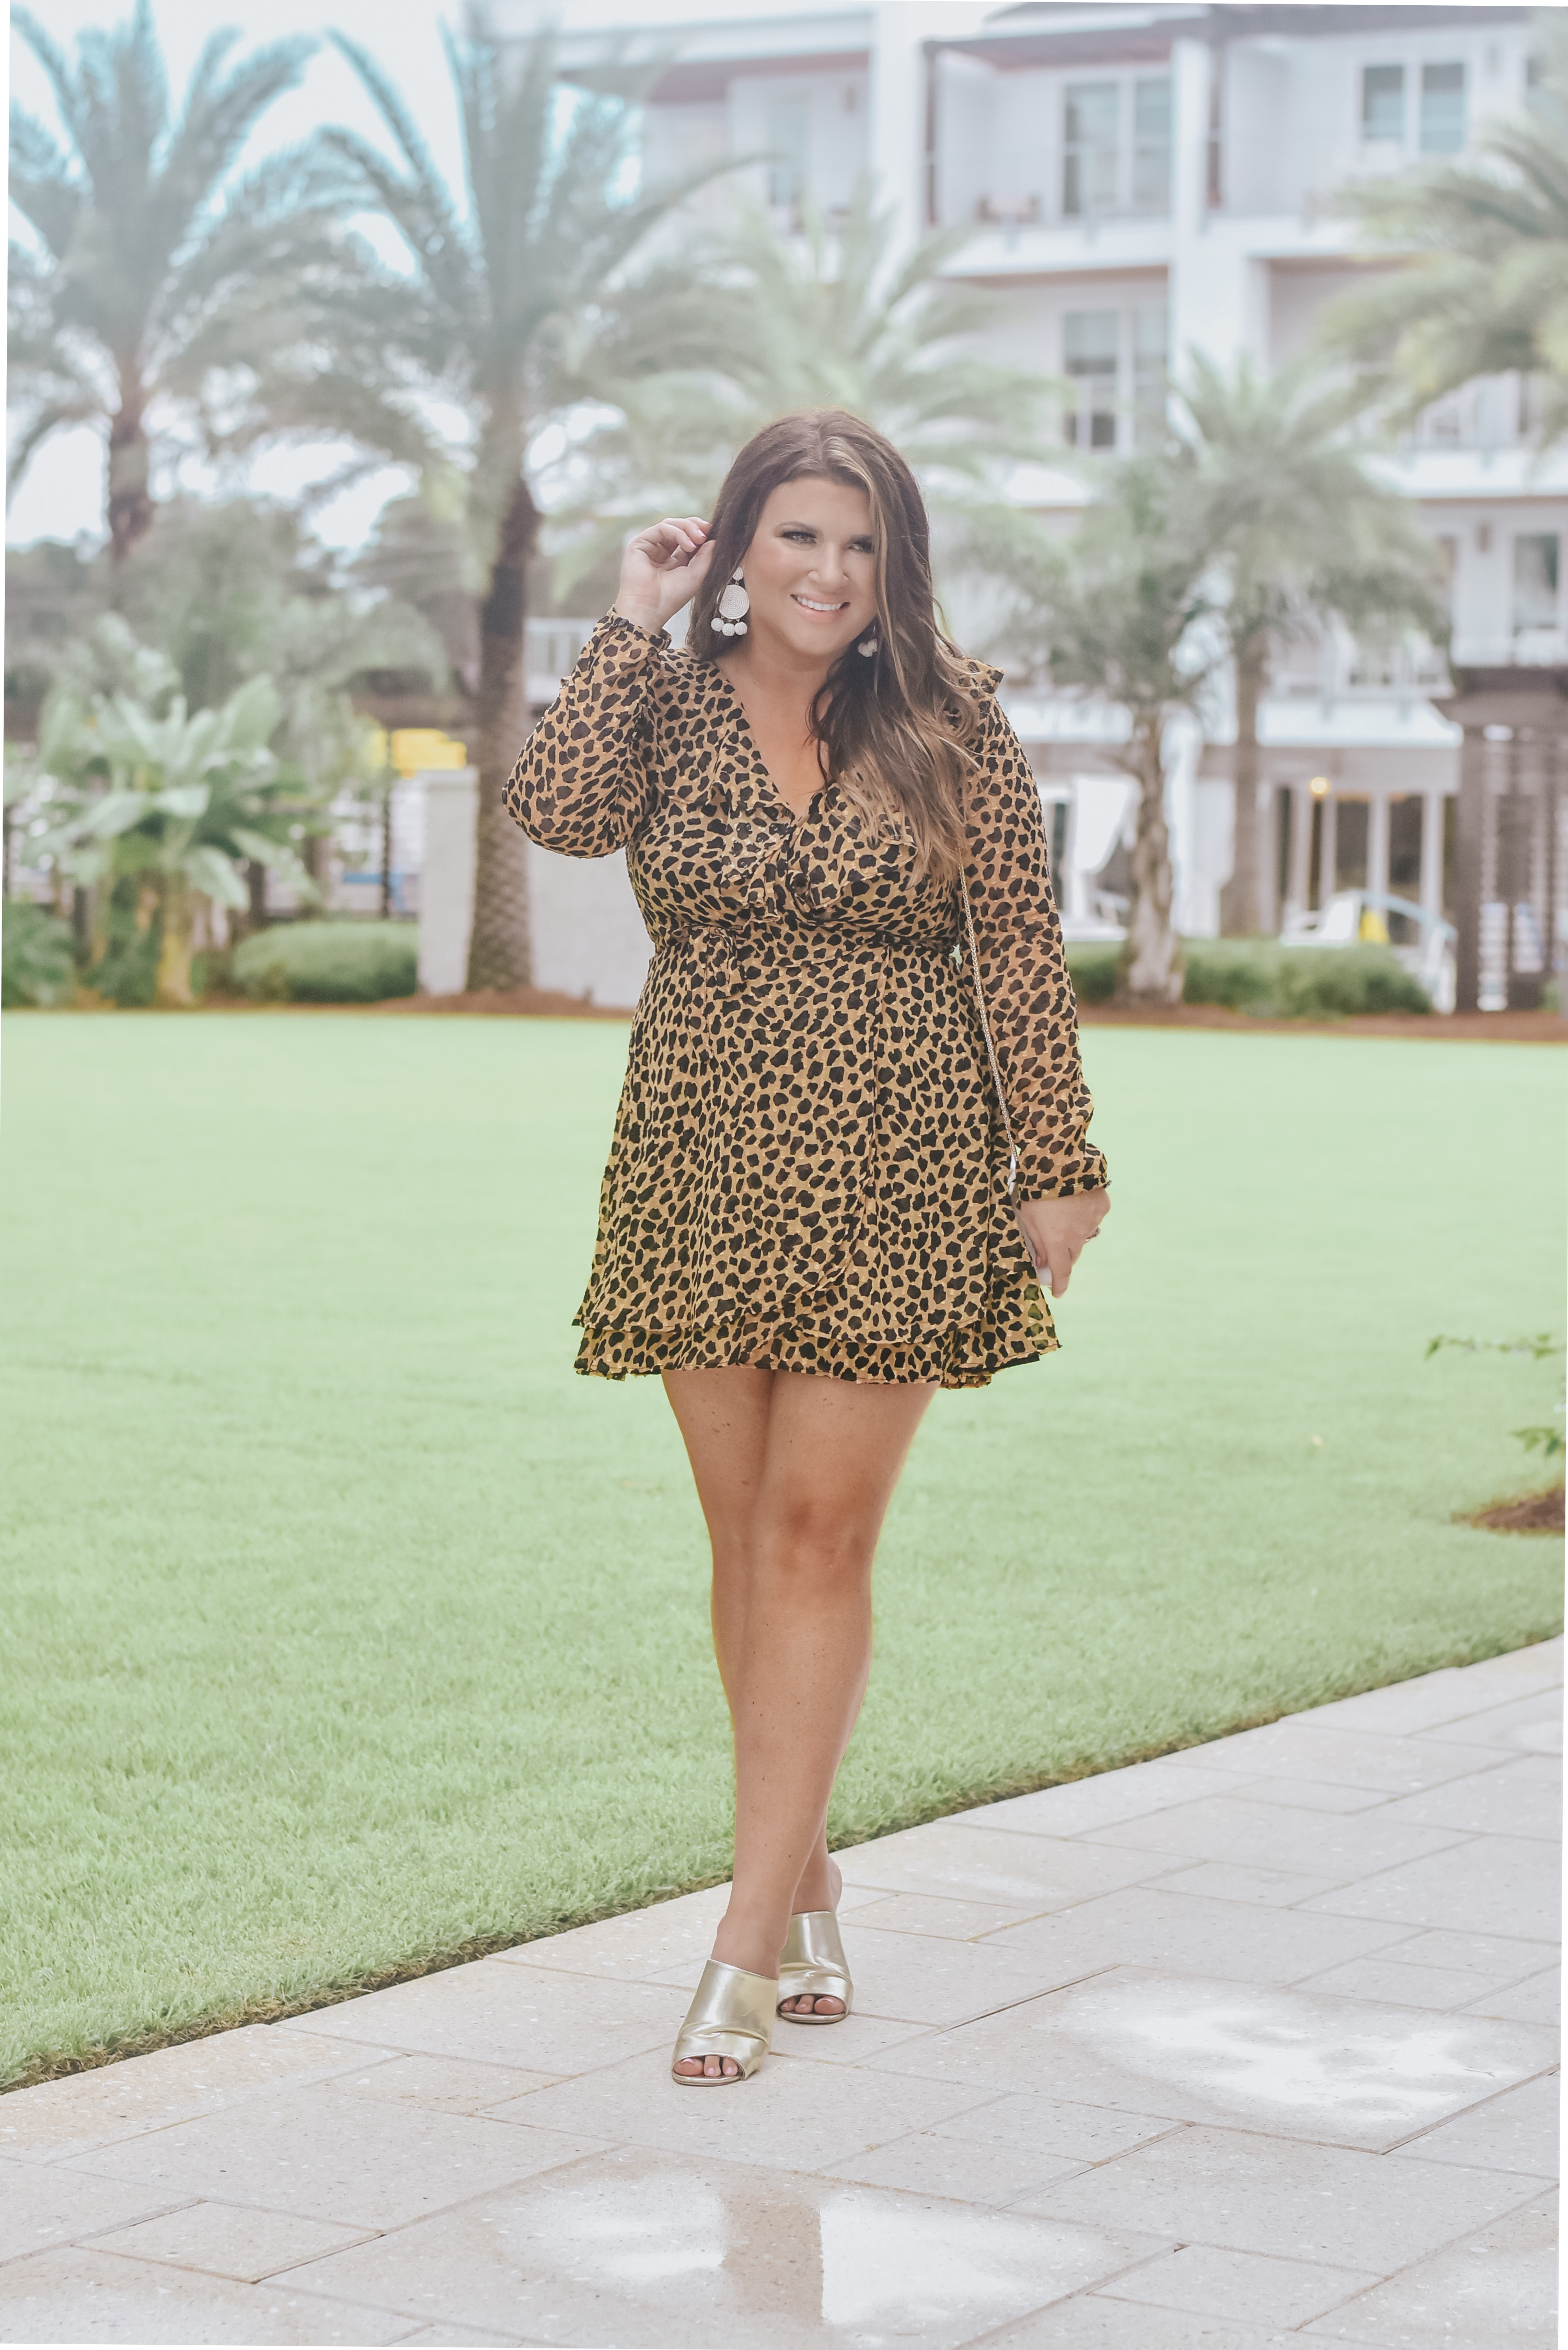 30A Blogger Weekend wearing Free People leopard mini at The Pointe